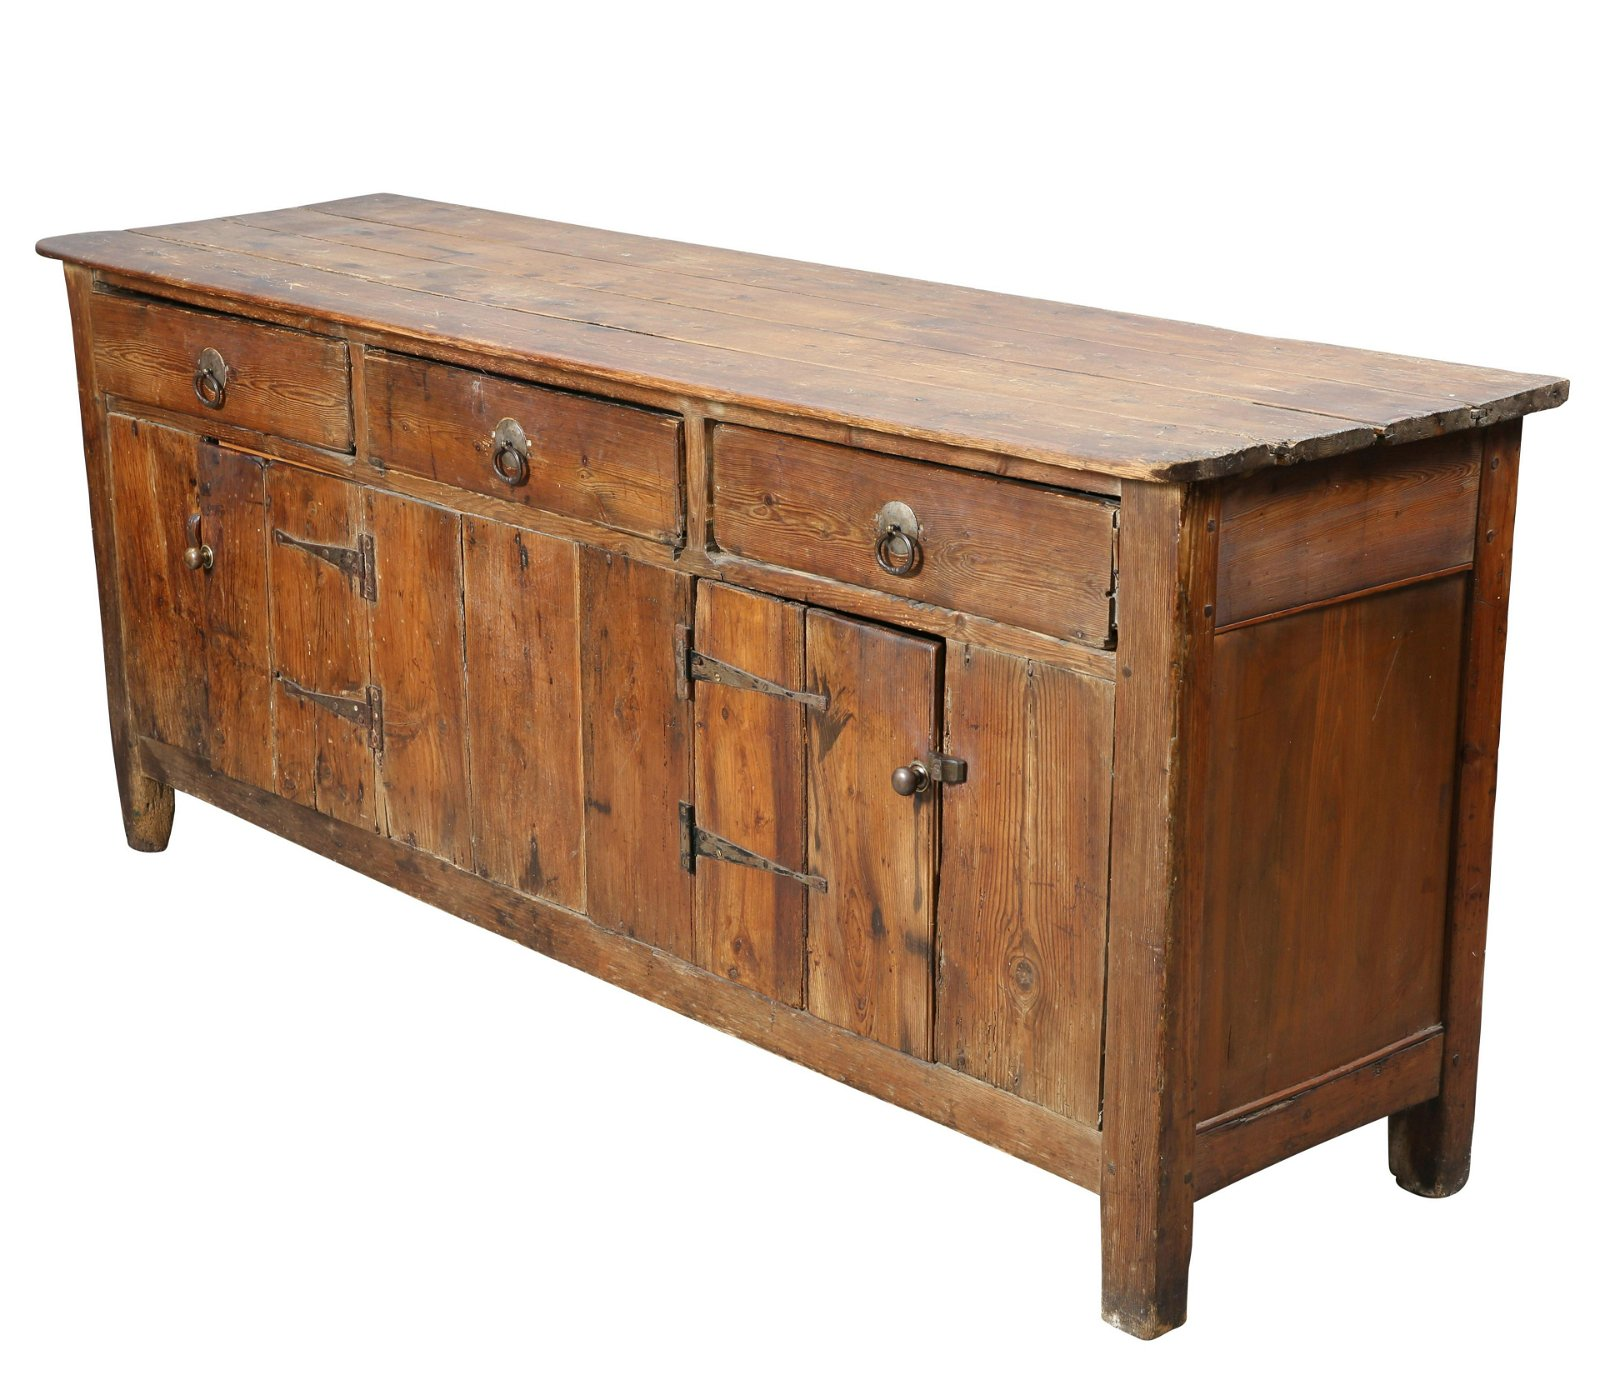 A LARGE PINE DRESSER BASE, 18TH/19TH CENTURY, the